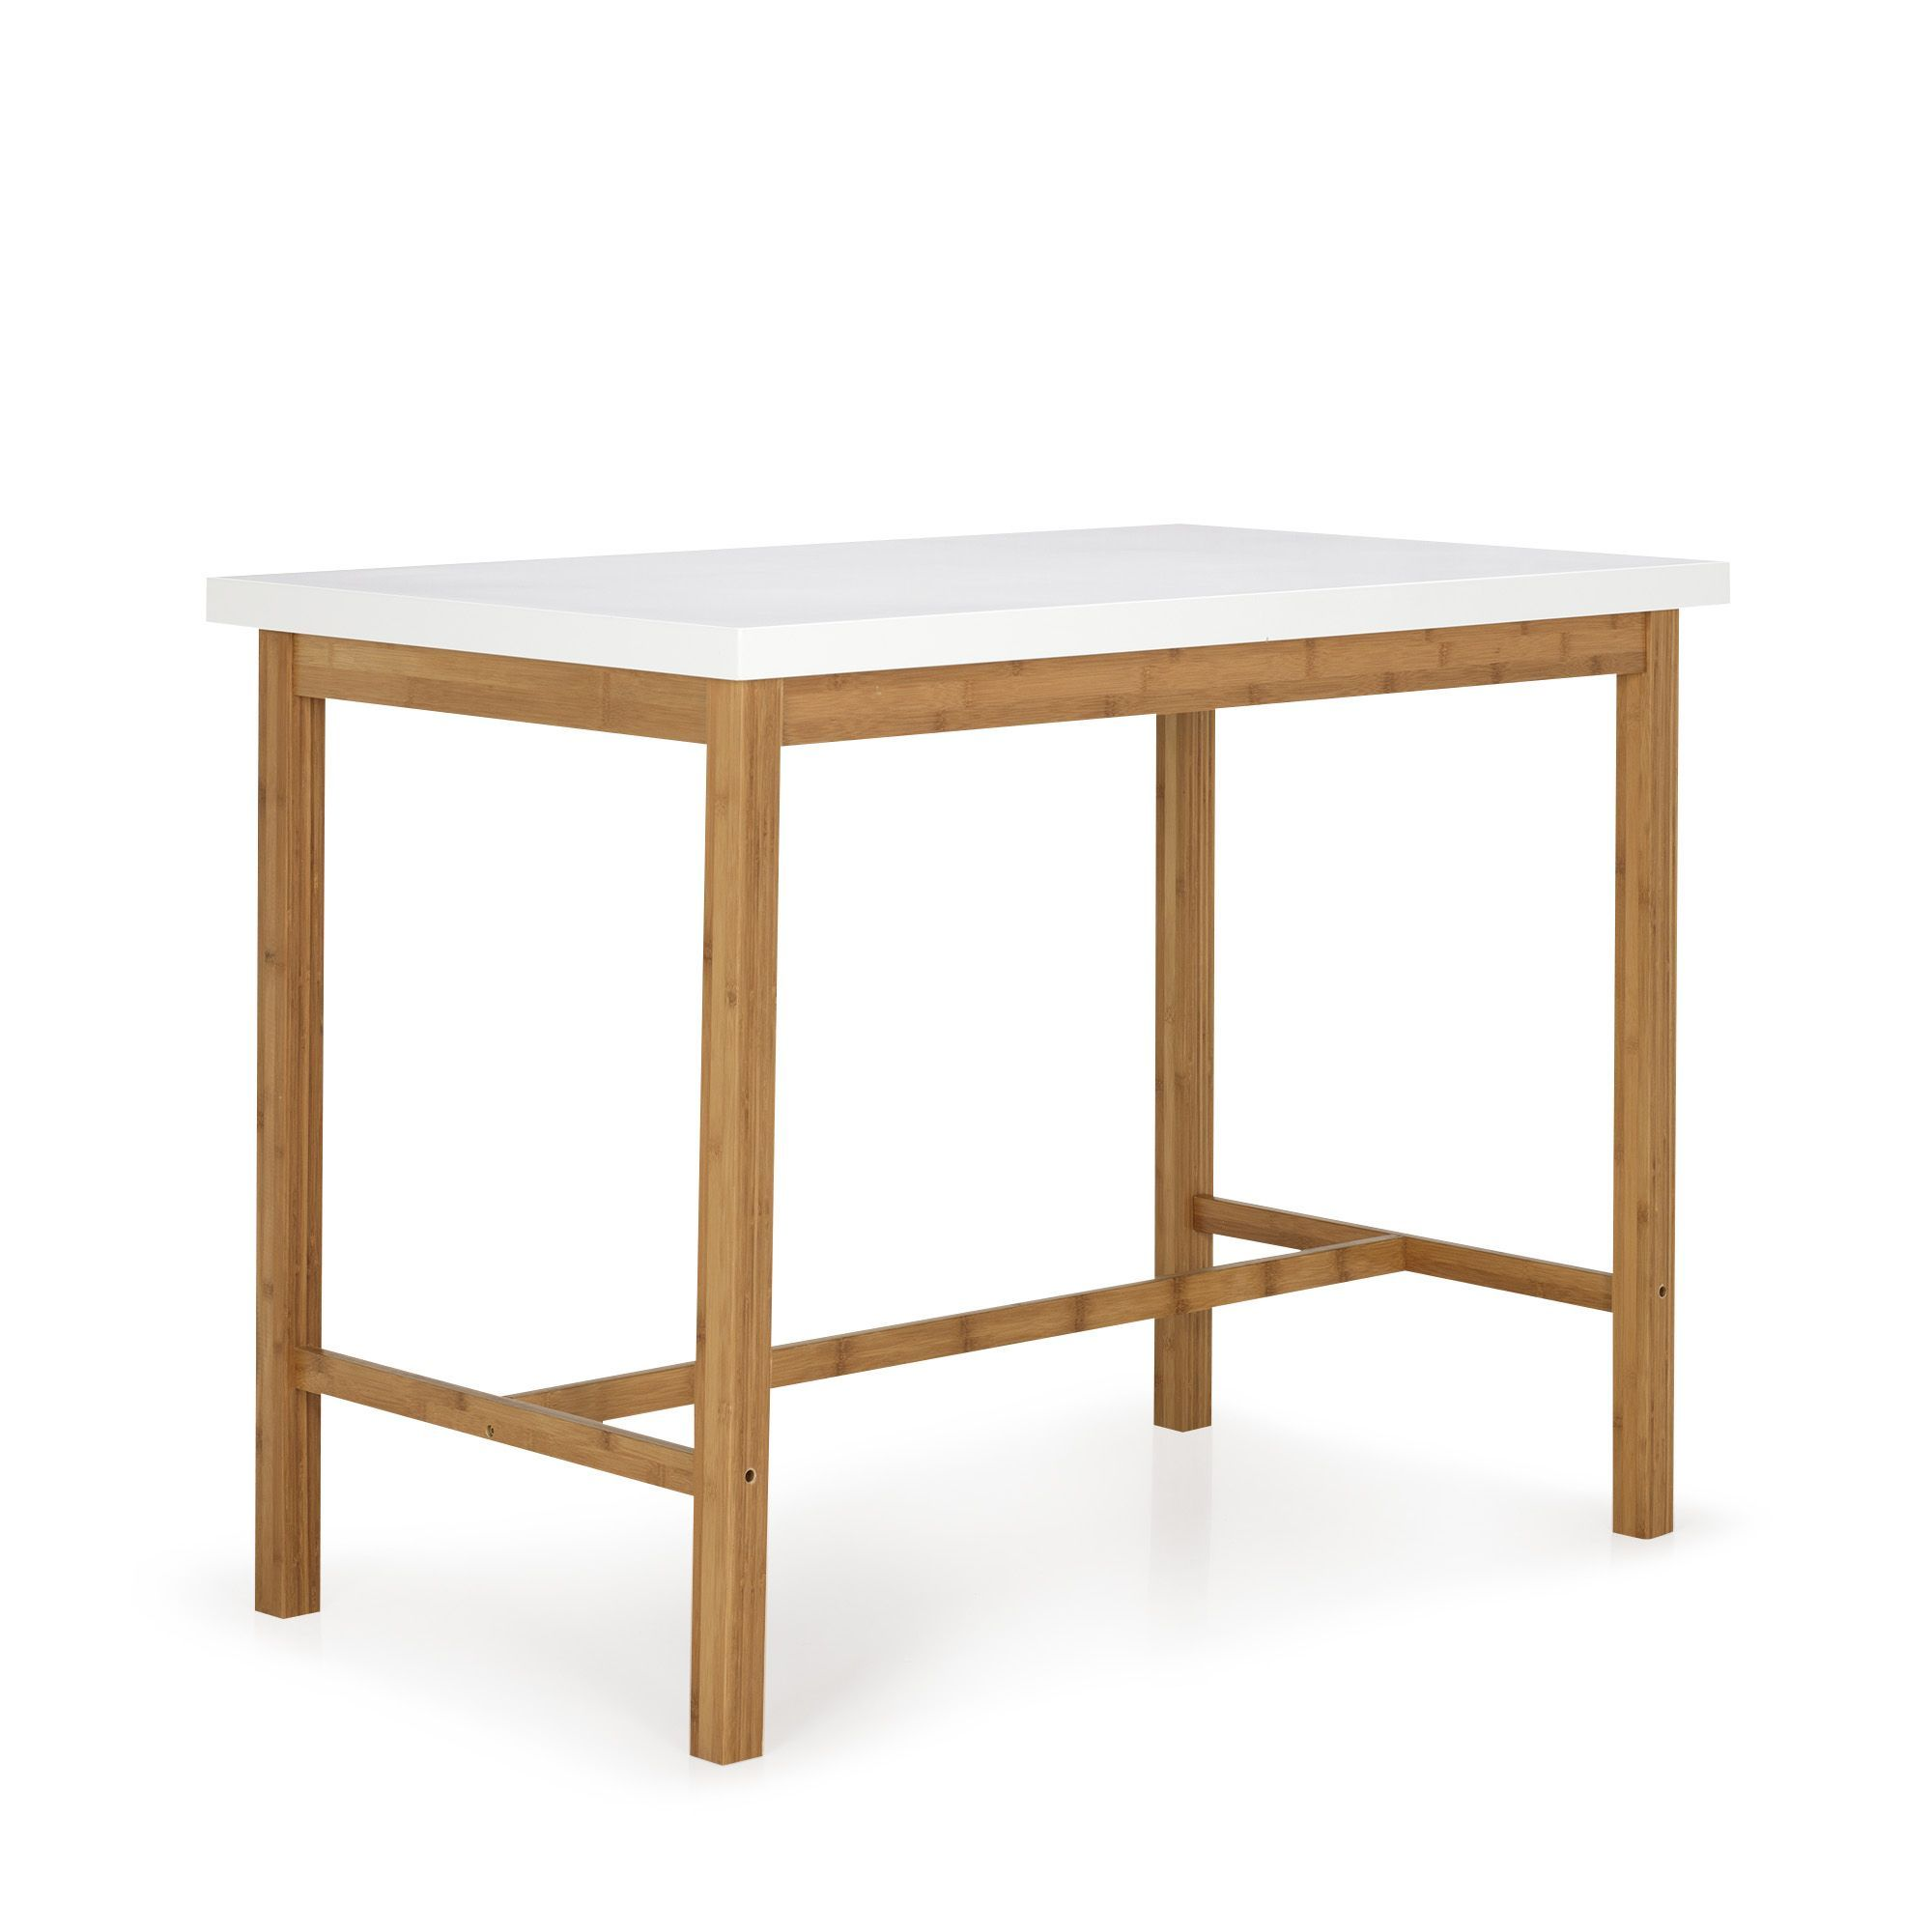 Bar Table Haute Table Haute Blanche Et Naturelle H90cm Blanc Naturel Buluh